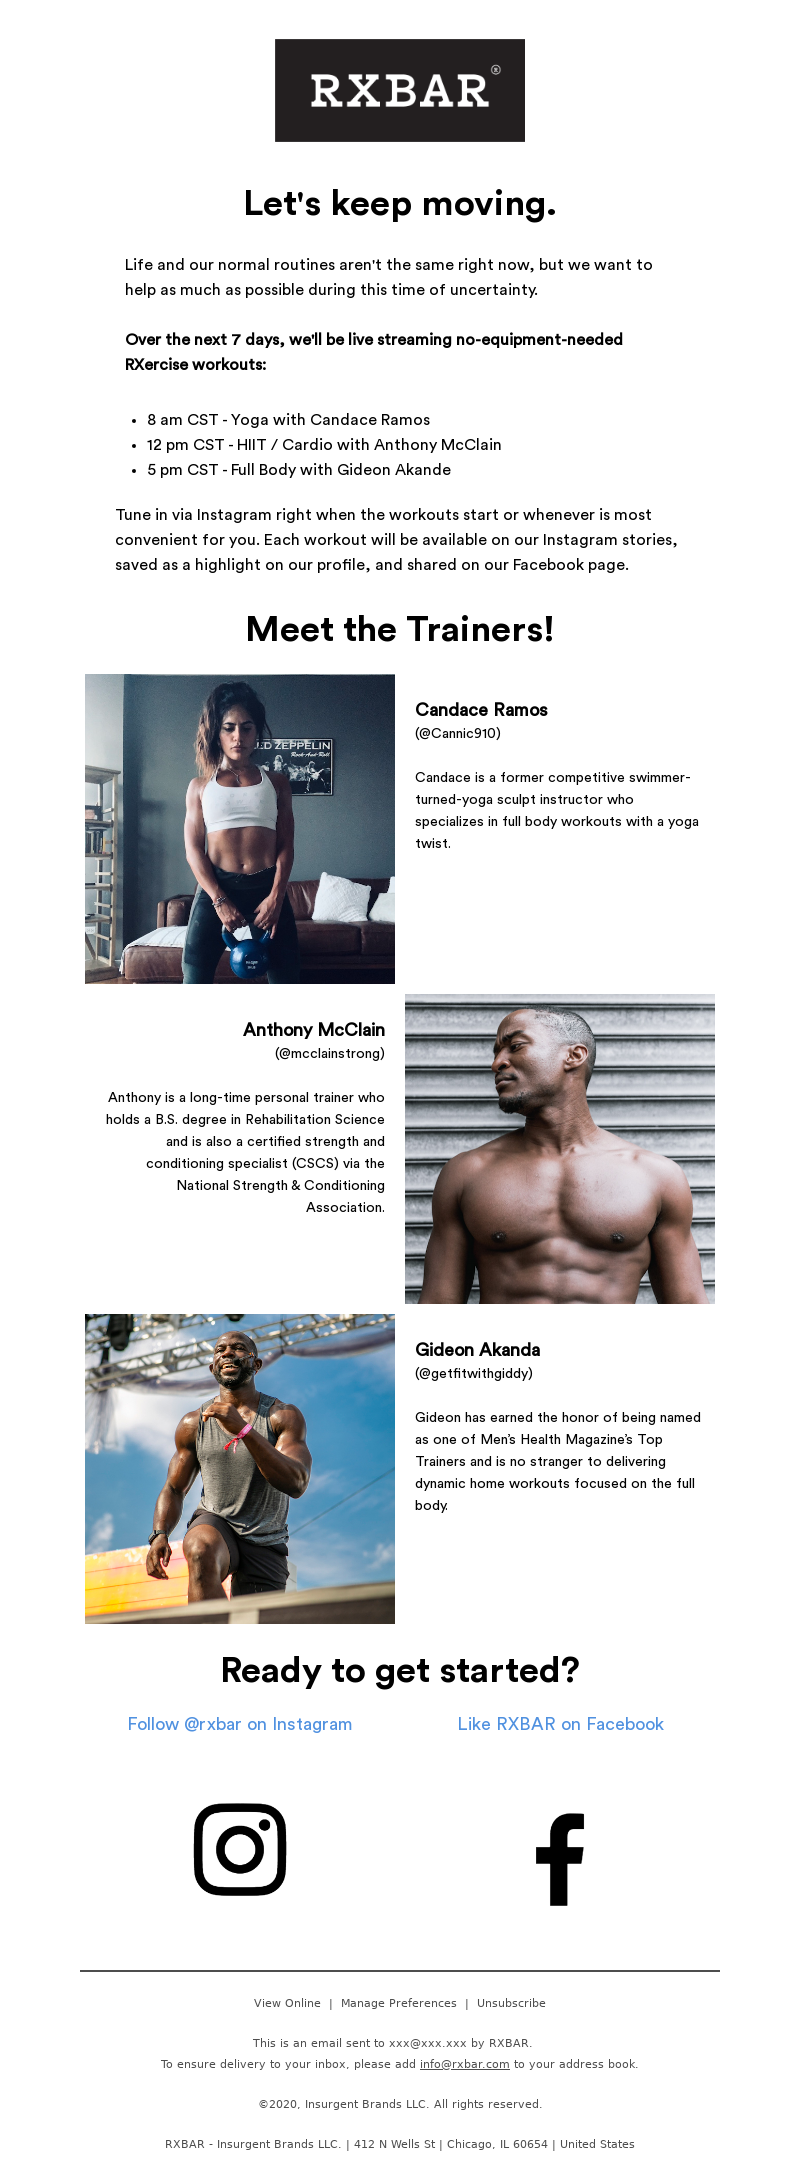 RXBAR - 7 days of free at-home workouts